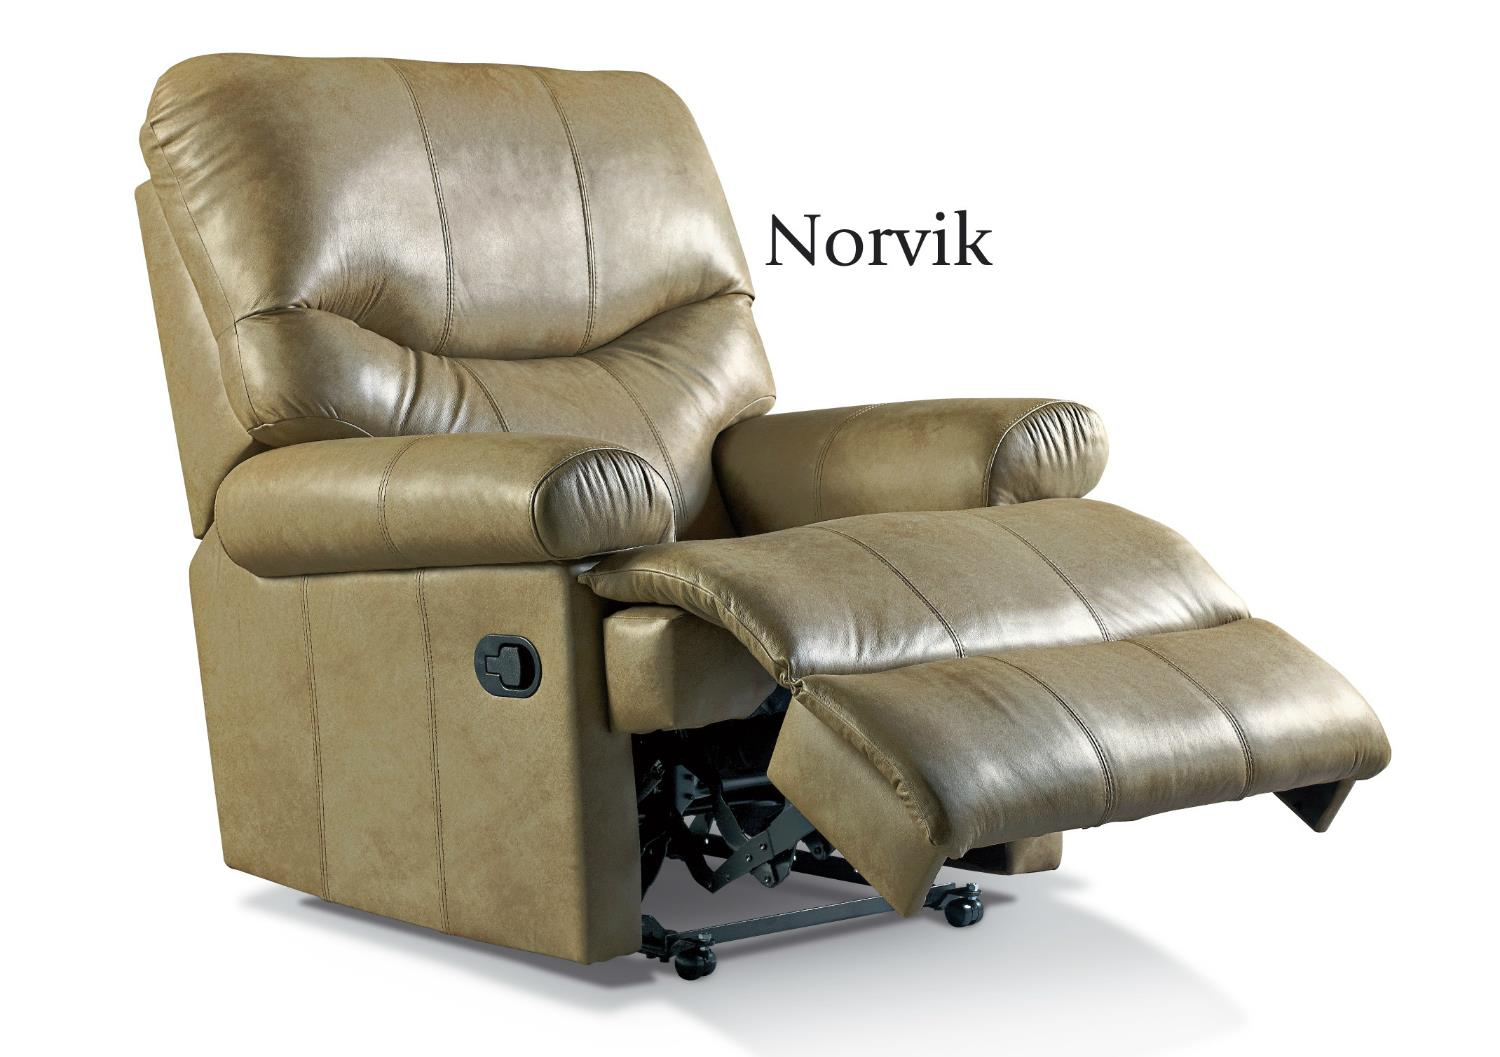 NORVIK Leather Reclining Chair by Sherborne